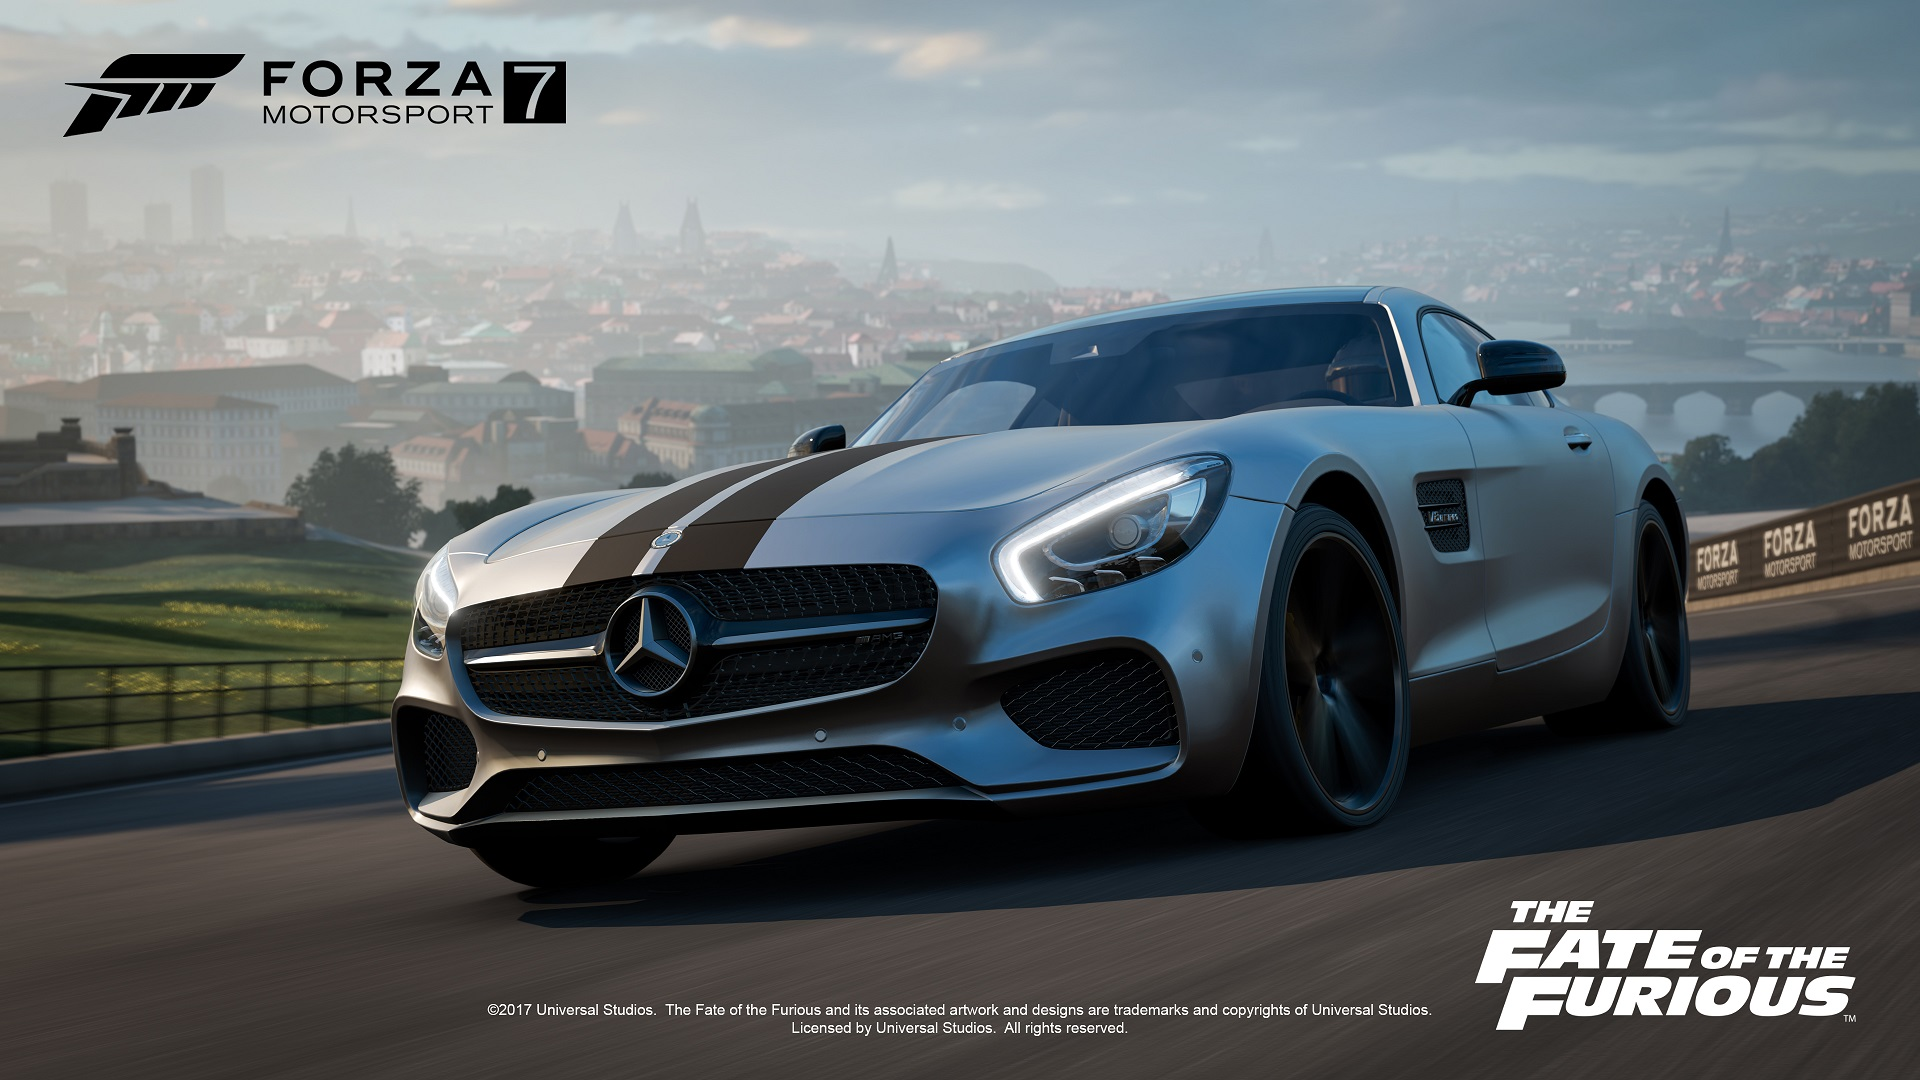 Best Car Drifting Wallpapers Fast And Furious Fate Of The Furious Car Pack Announced